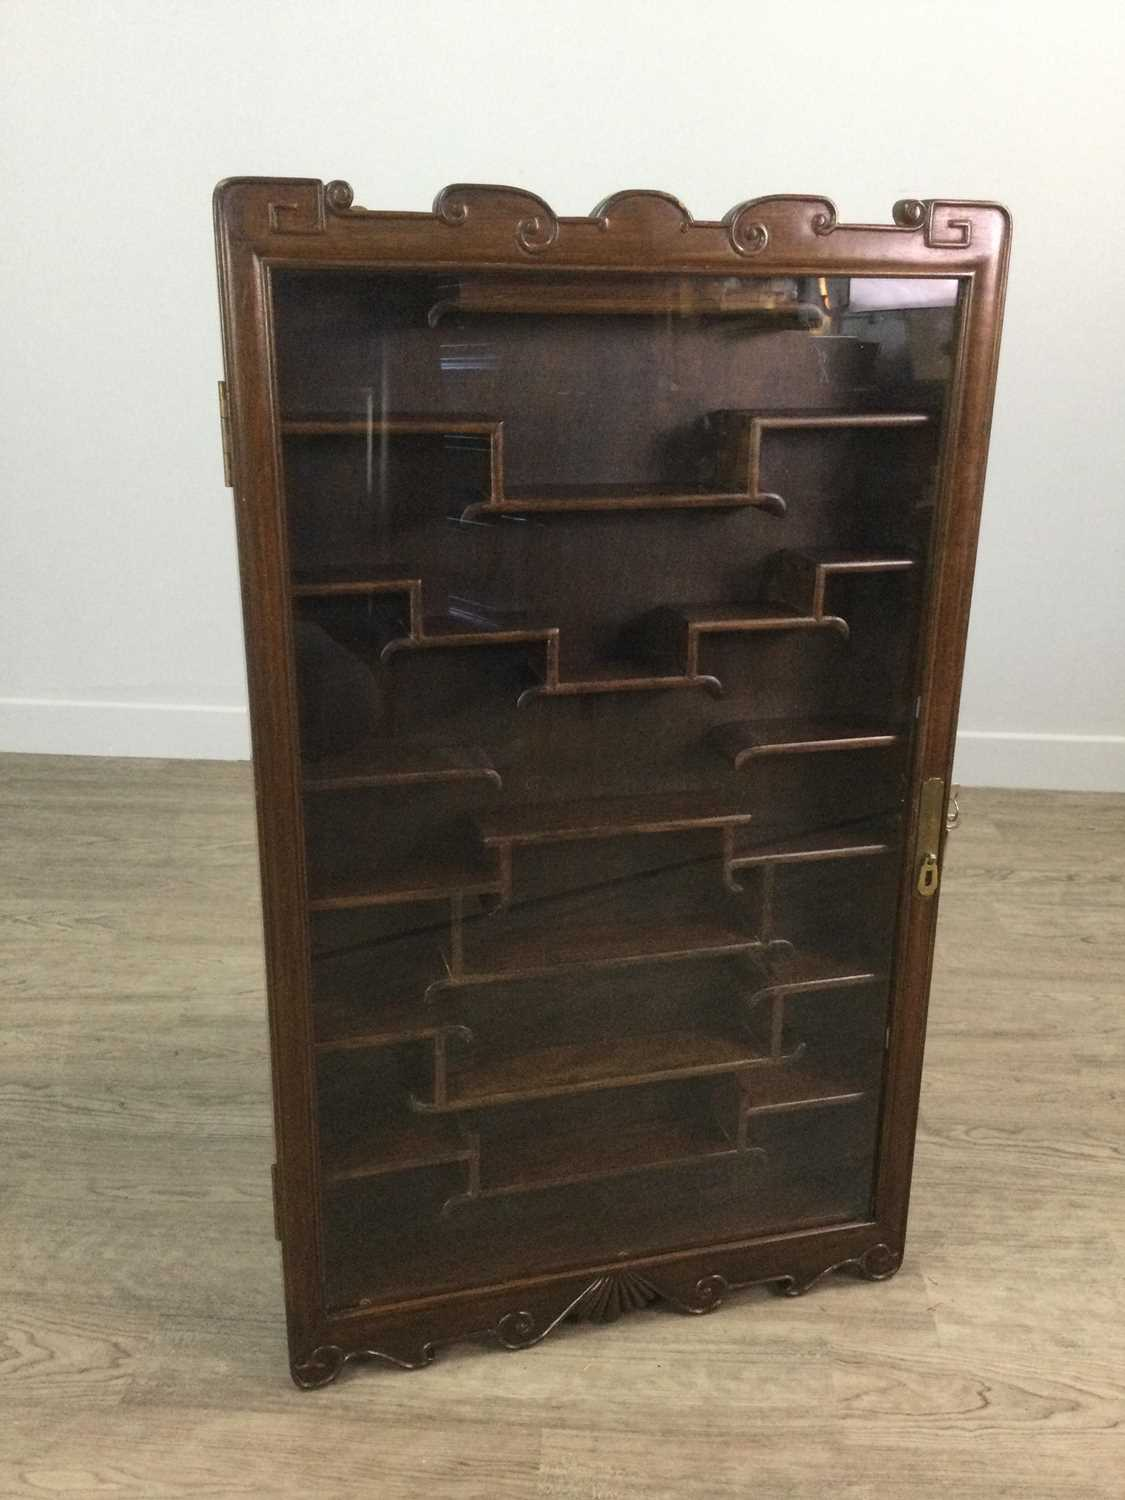 Lot 776 - A 20TH CENTURY CHINESE WALL MOUNTING DISPLAY CABINET